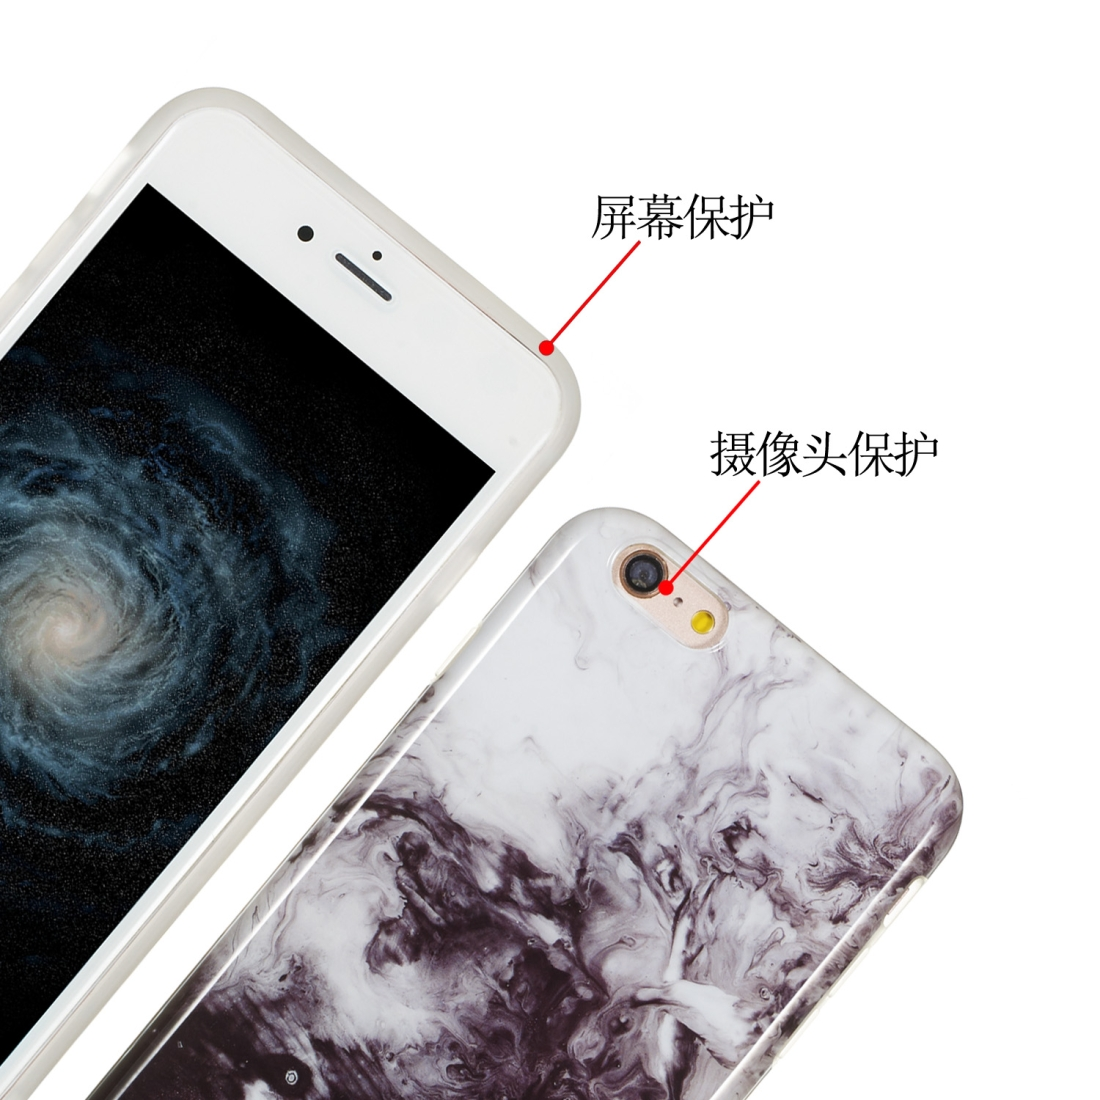 TPU Protective Case For iPhone 6 Plus & 6s Plus (Ink Painting)